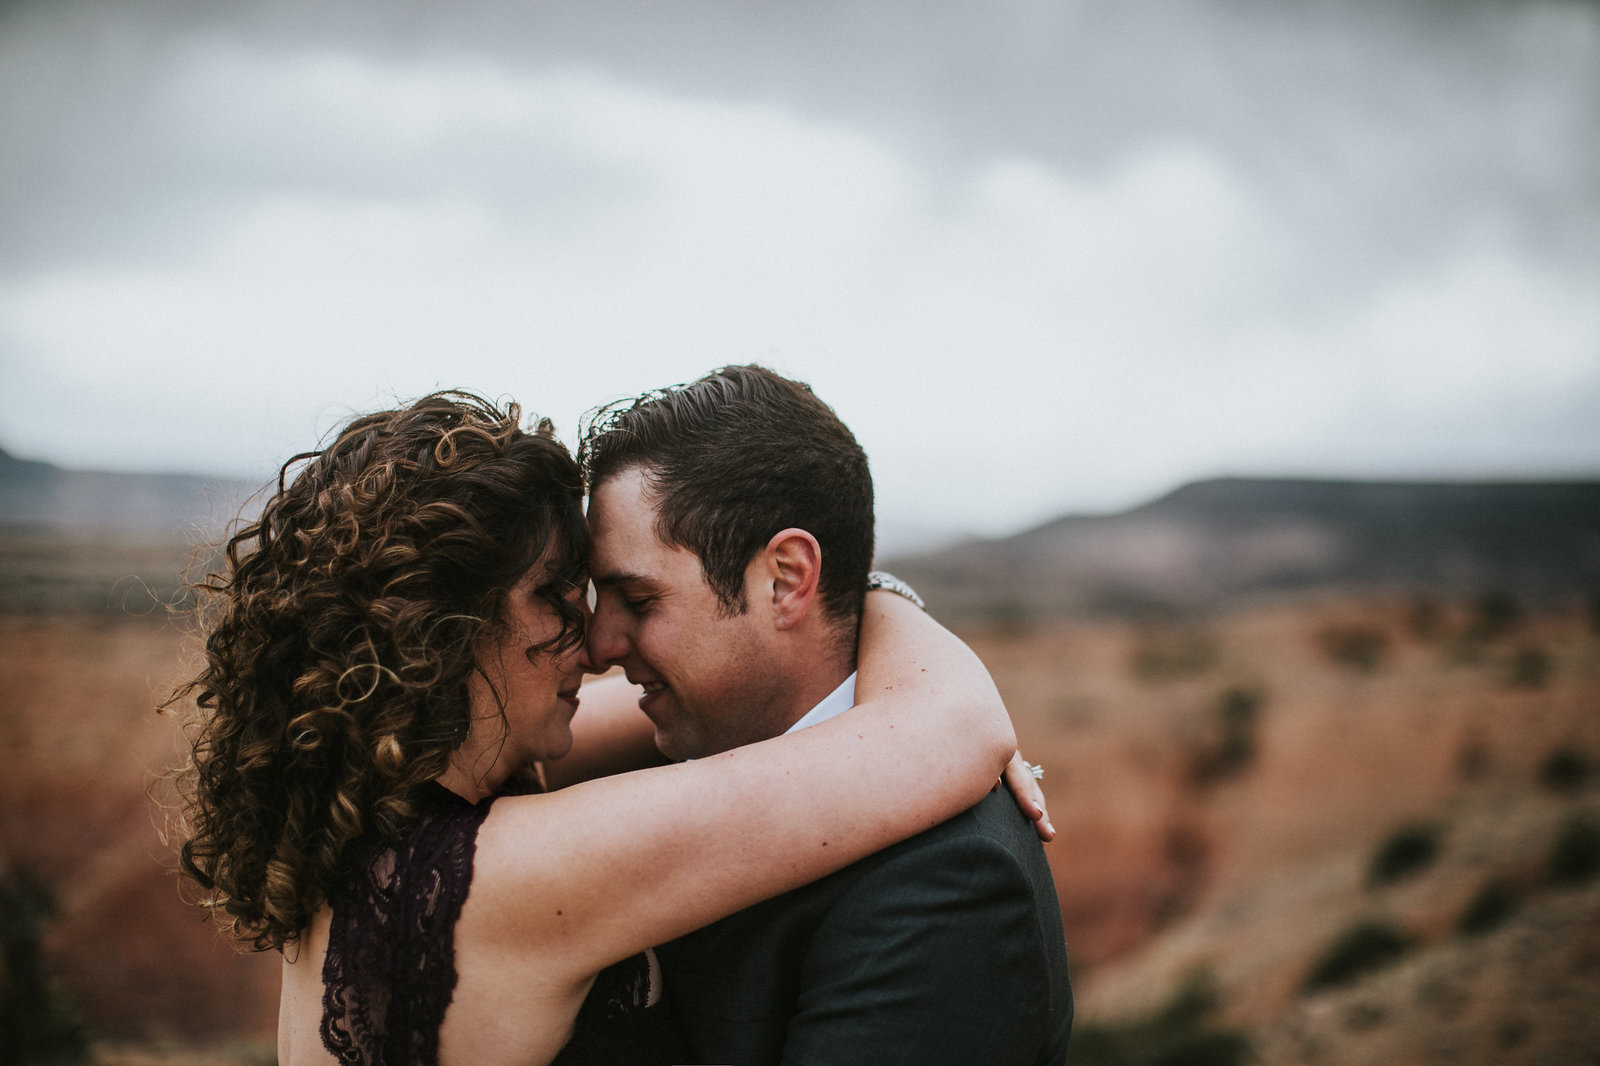 new-mexico-destination-engagement-wedding-photography-videography-adventure-414